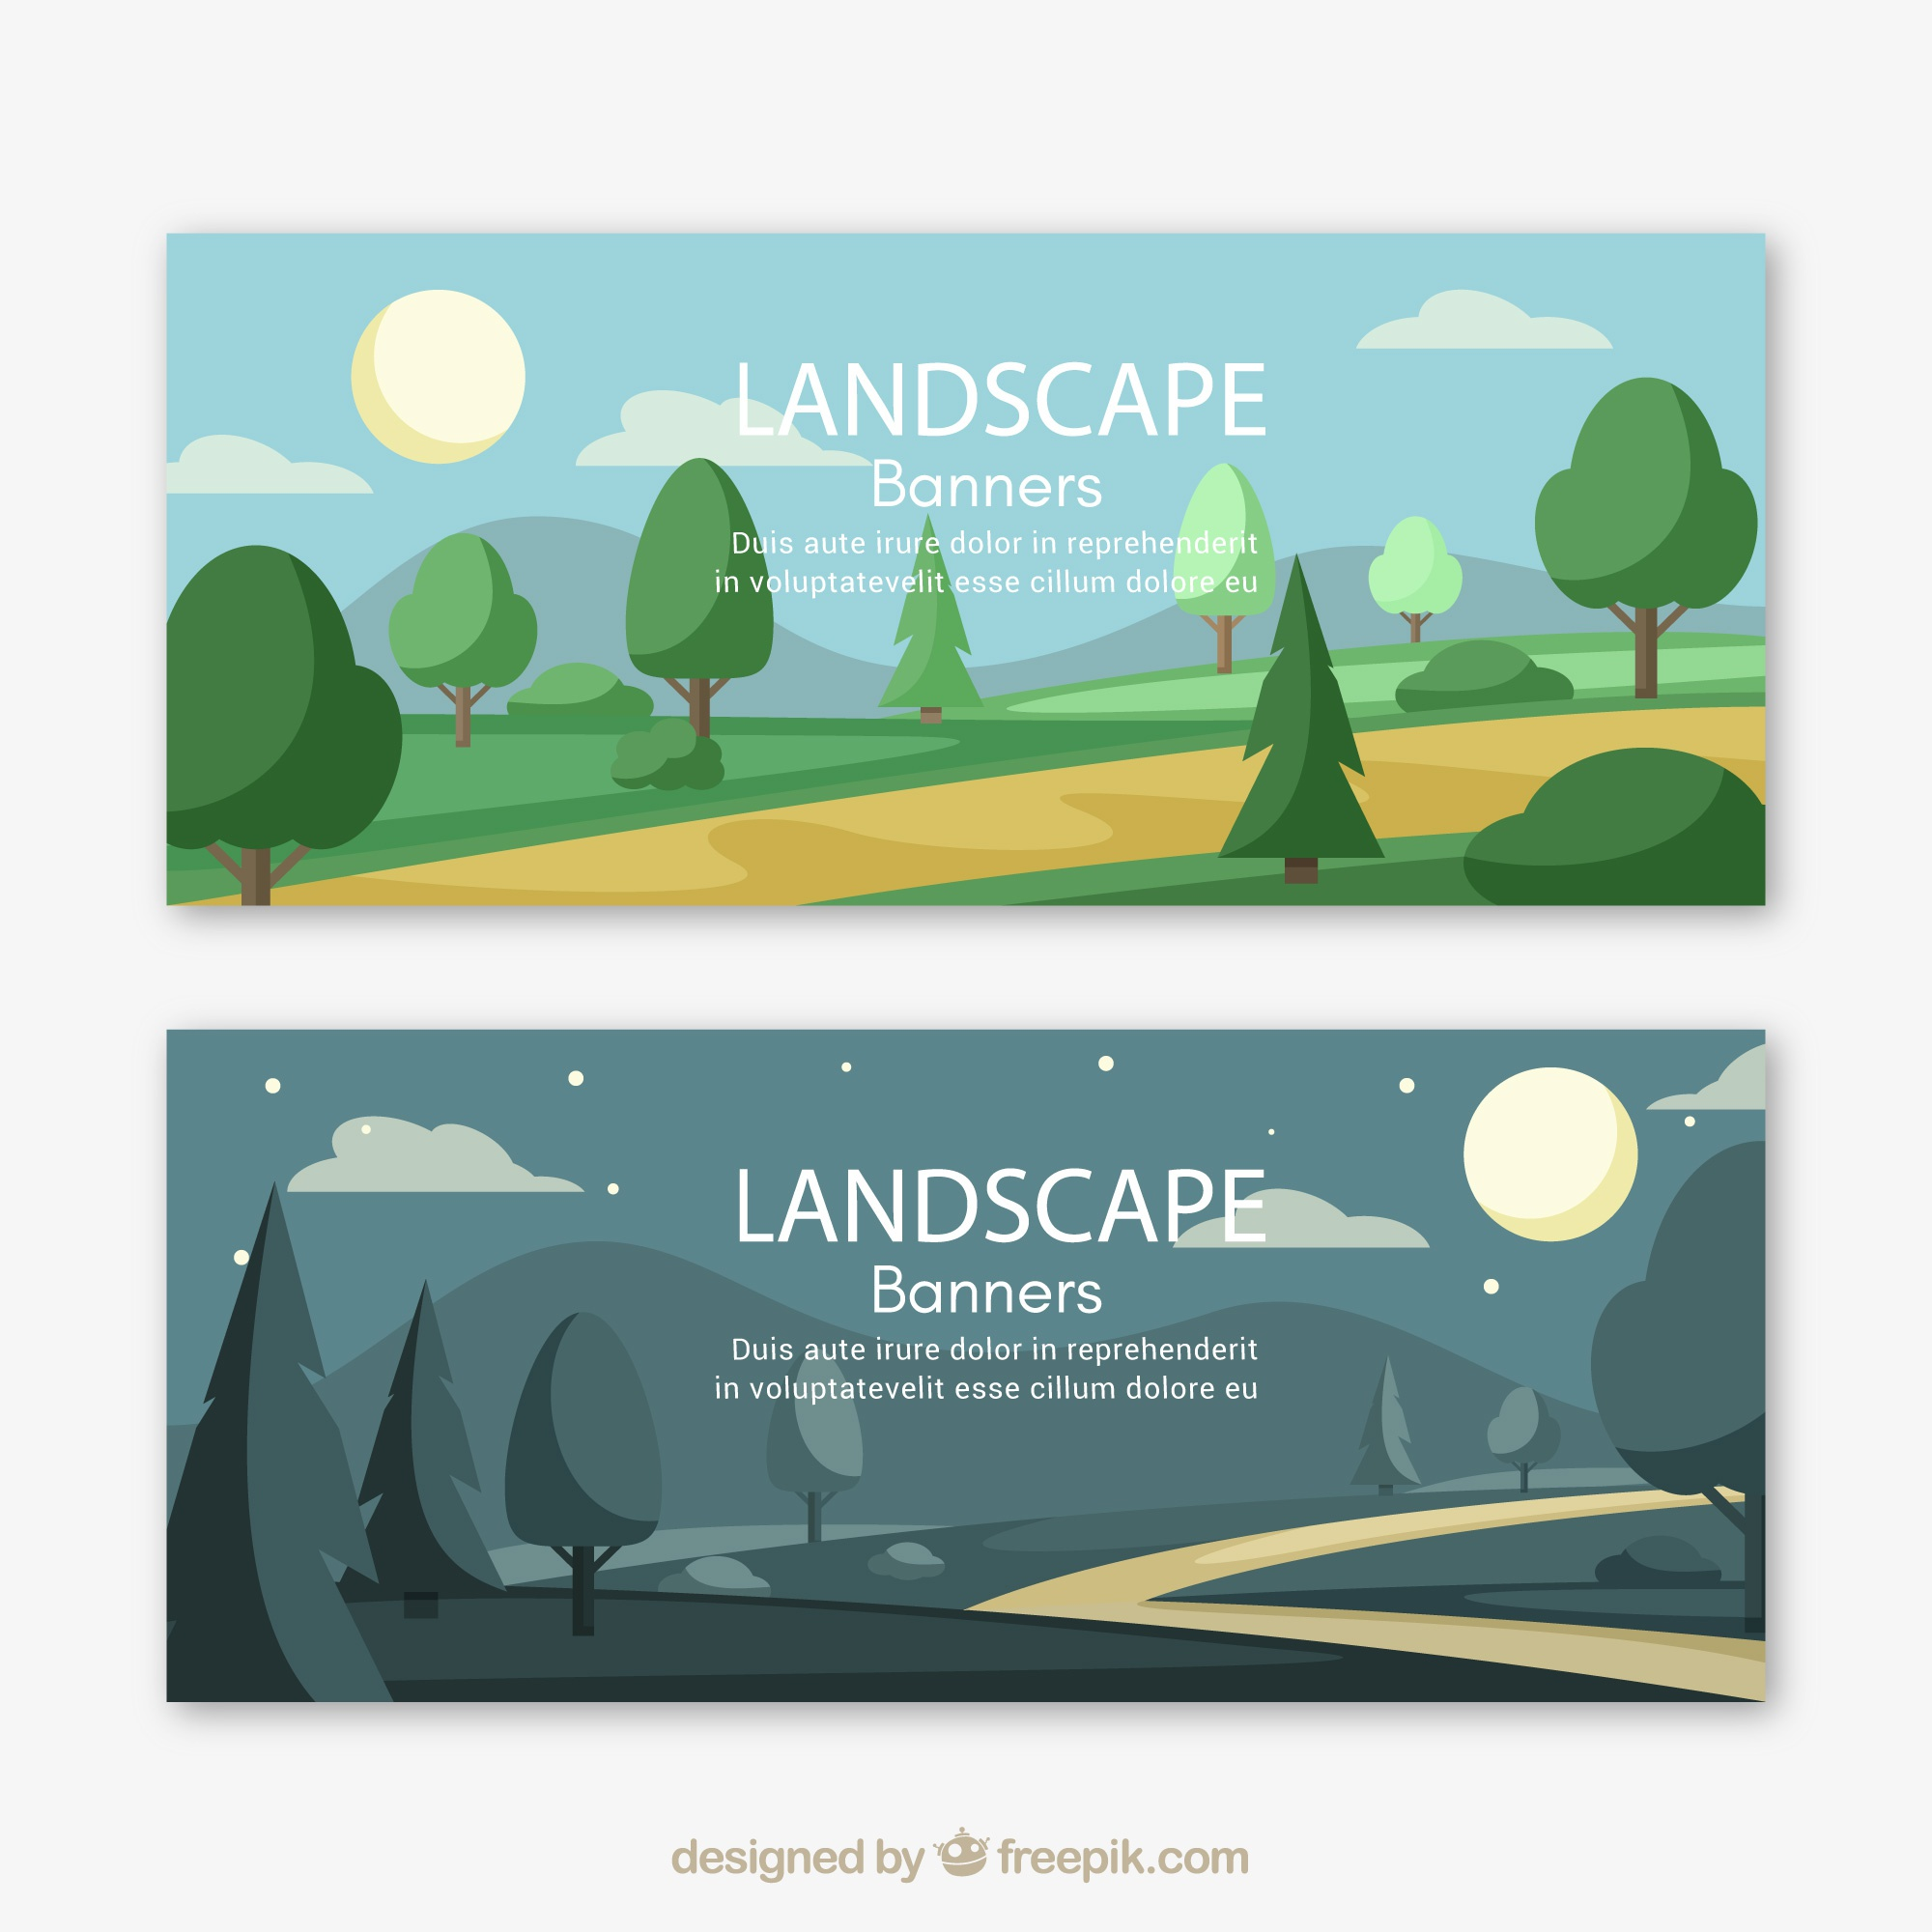 Landscape banners with trees and path